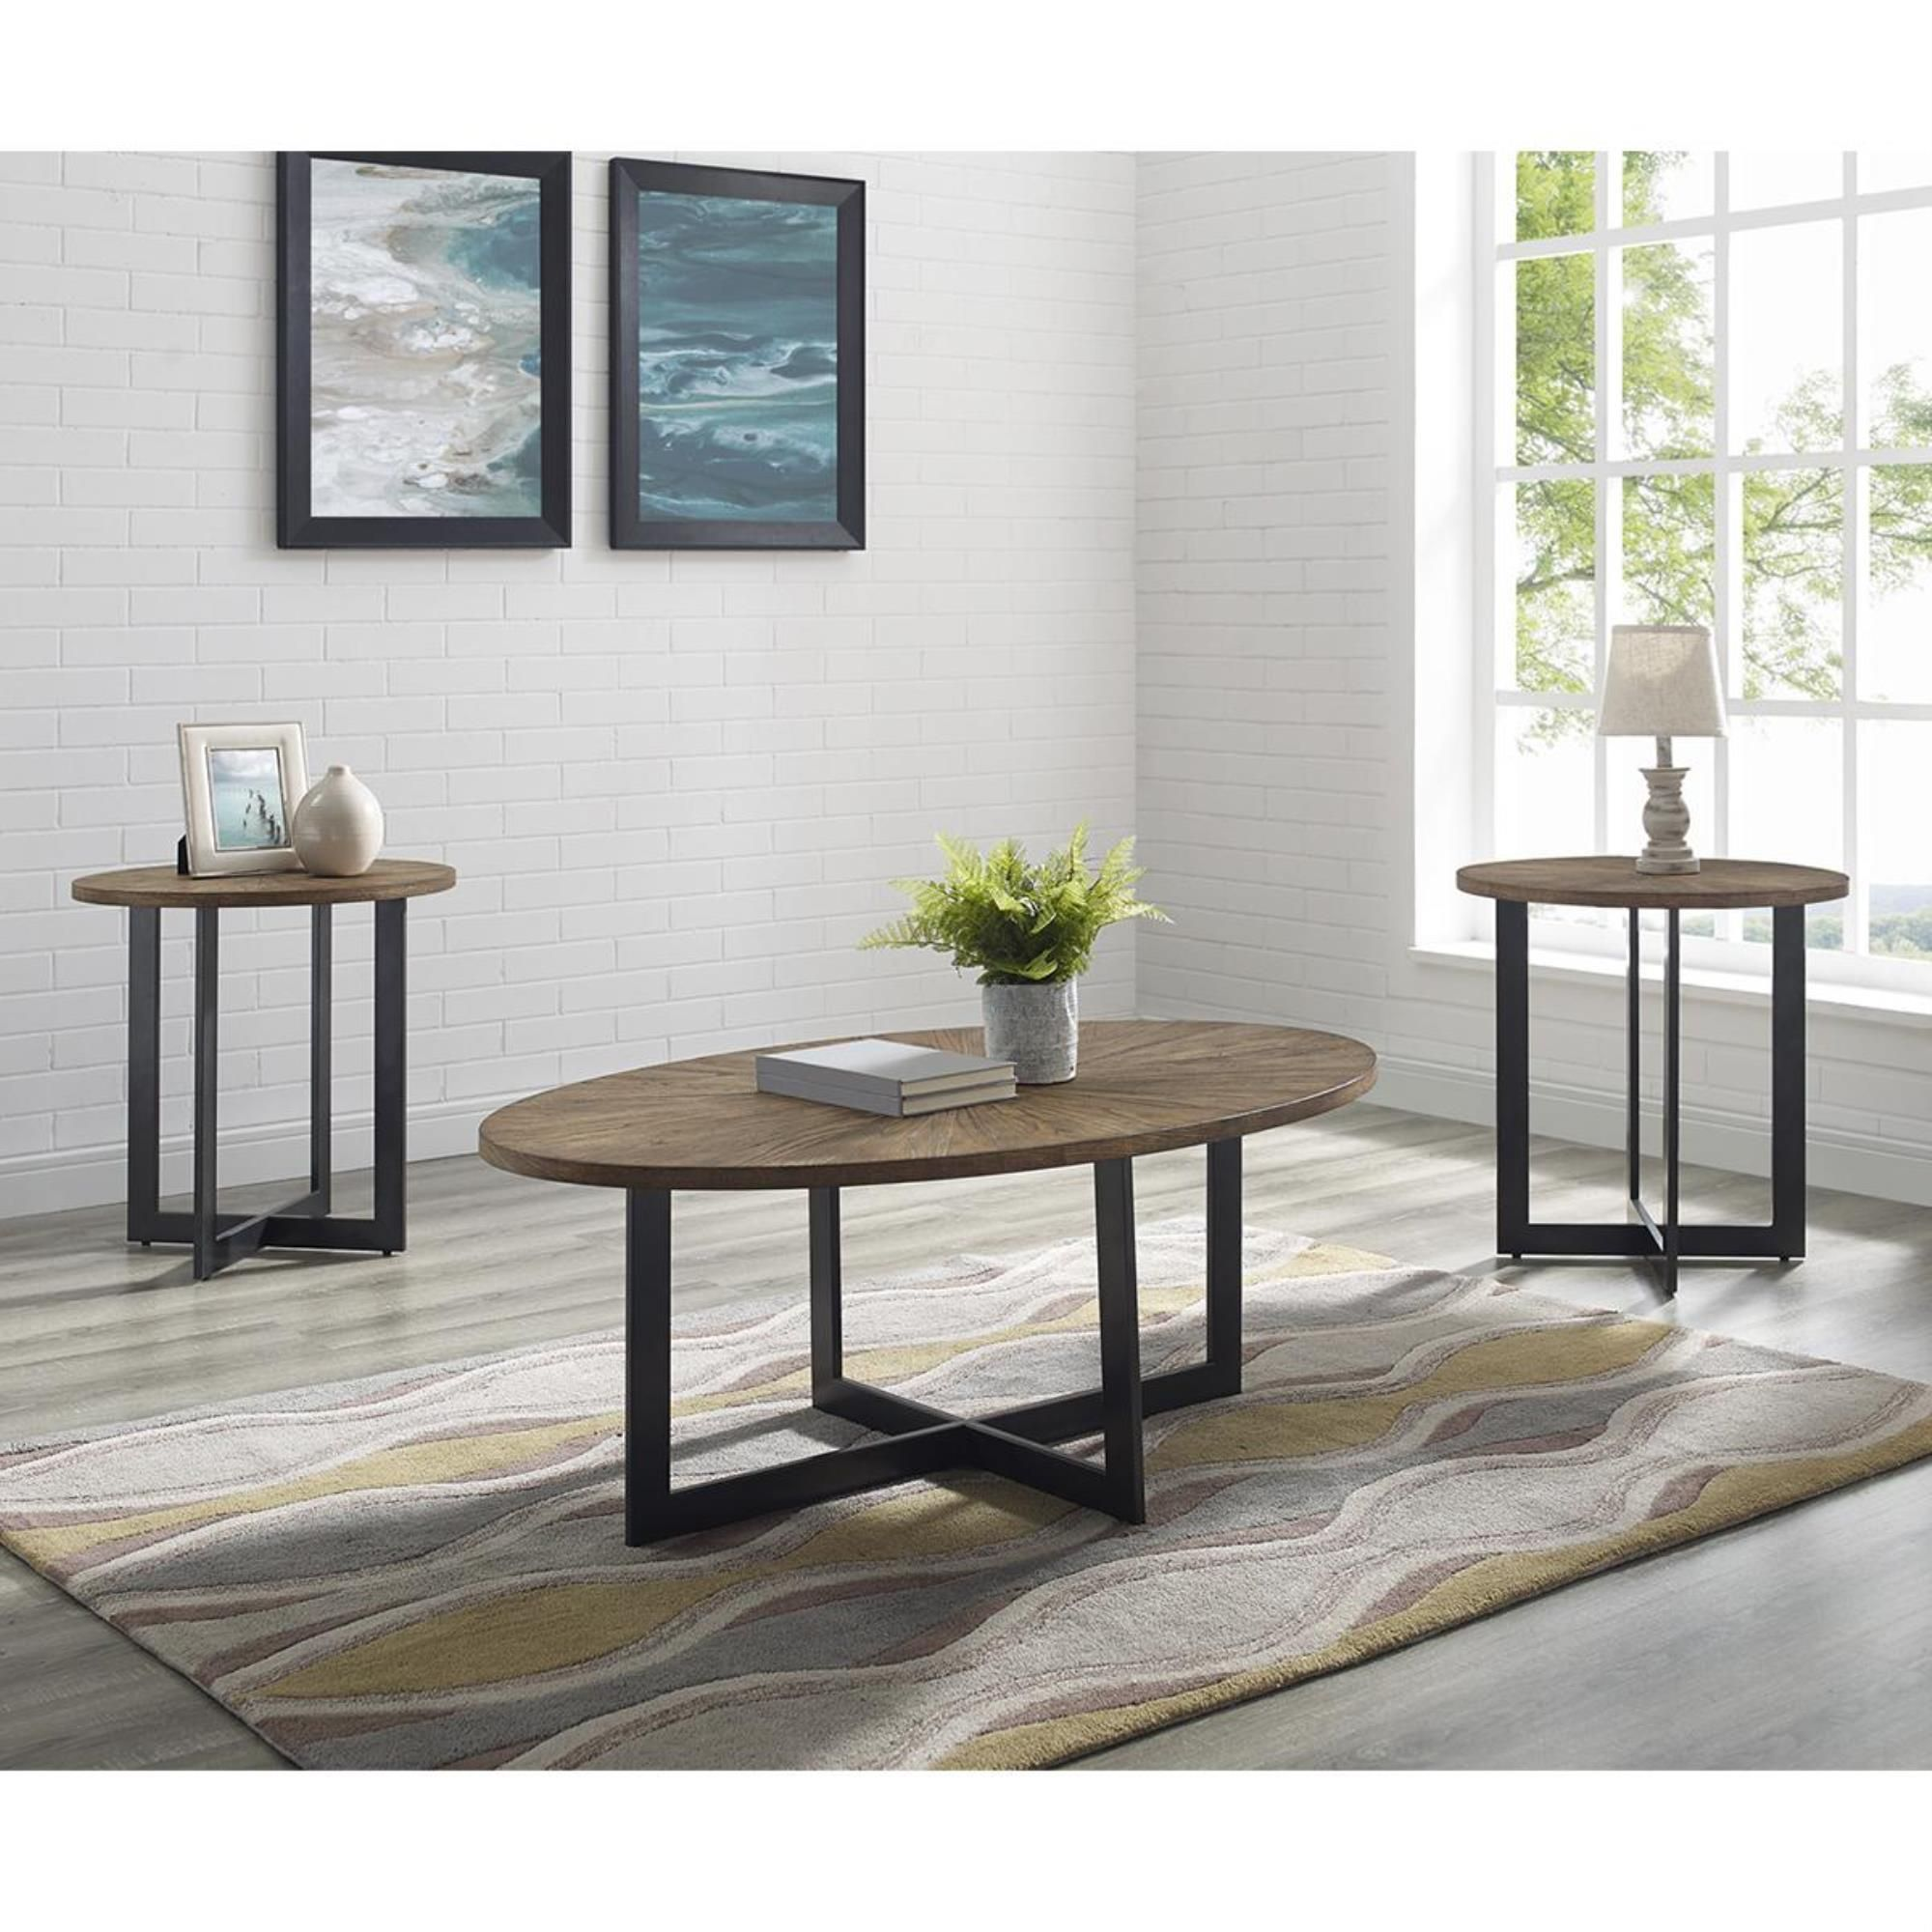 Crystal City Colton 3 Pack Table In Pecan Nebraska Furniture Mart 3 Piece Coffee Table Set Coffee Table Oval Wood Coffee Table [ 2000 x 2000 Pixel ]